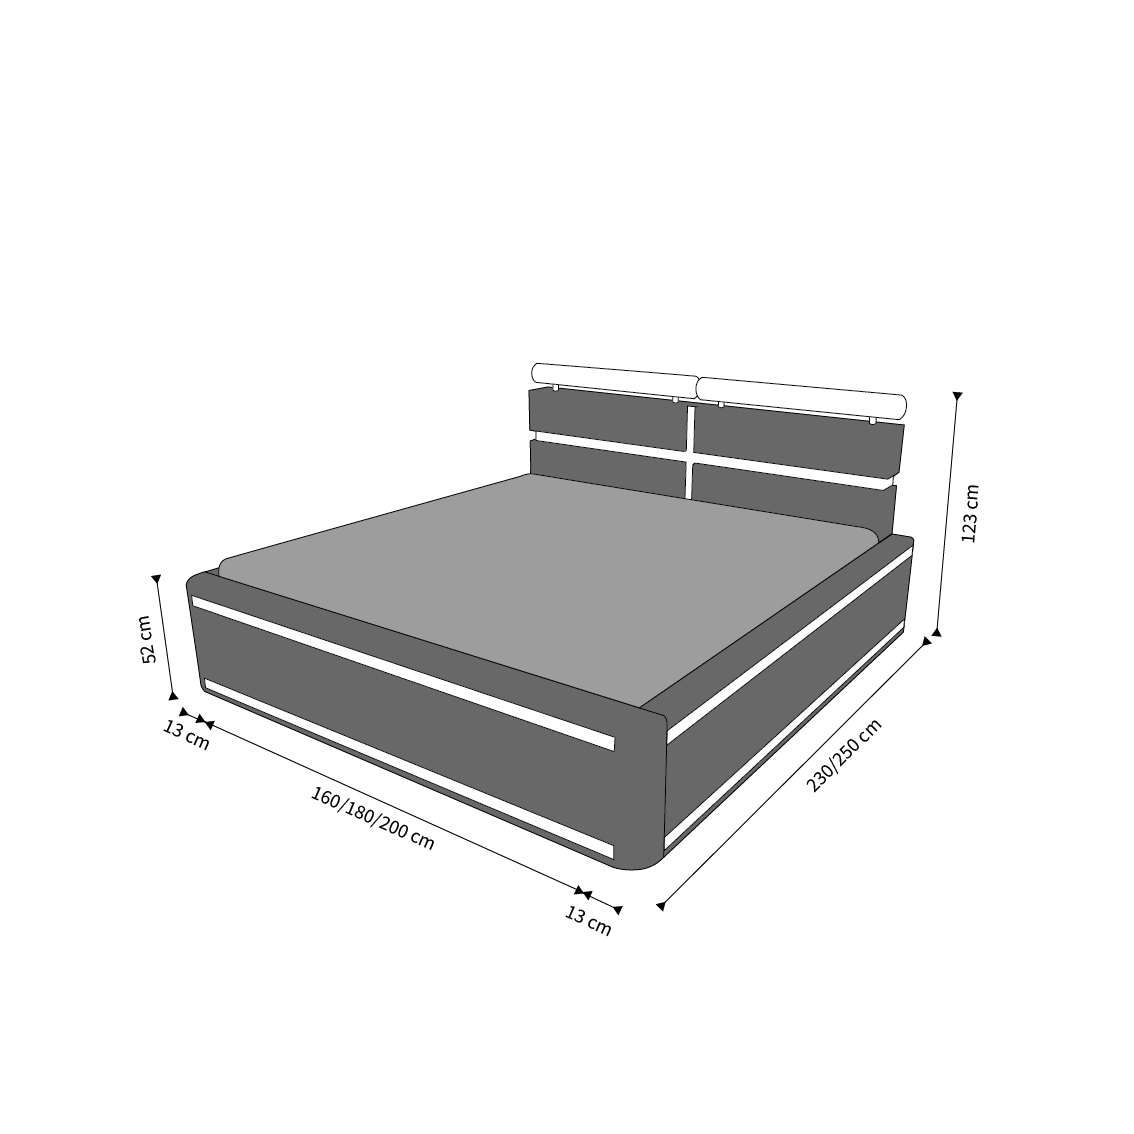 boxspringbett hotelbett design venedig luxus komplettbett doppelbett ehebett ebay. Black Bedroom Furniture Sets. Home Design Ideas